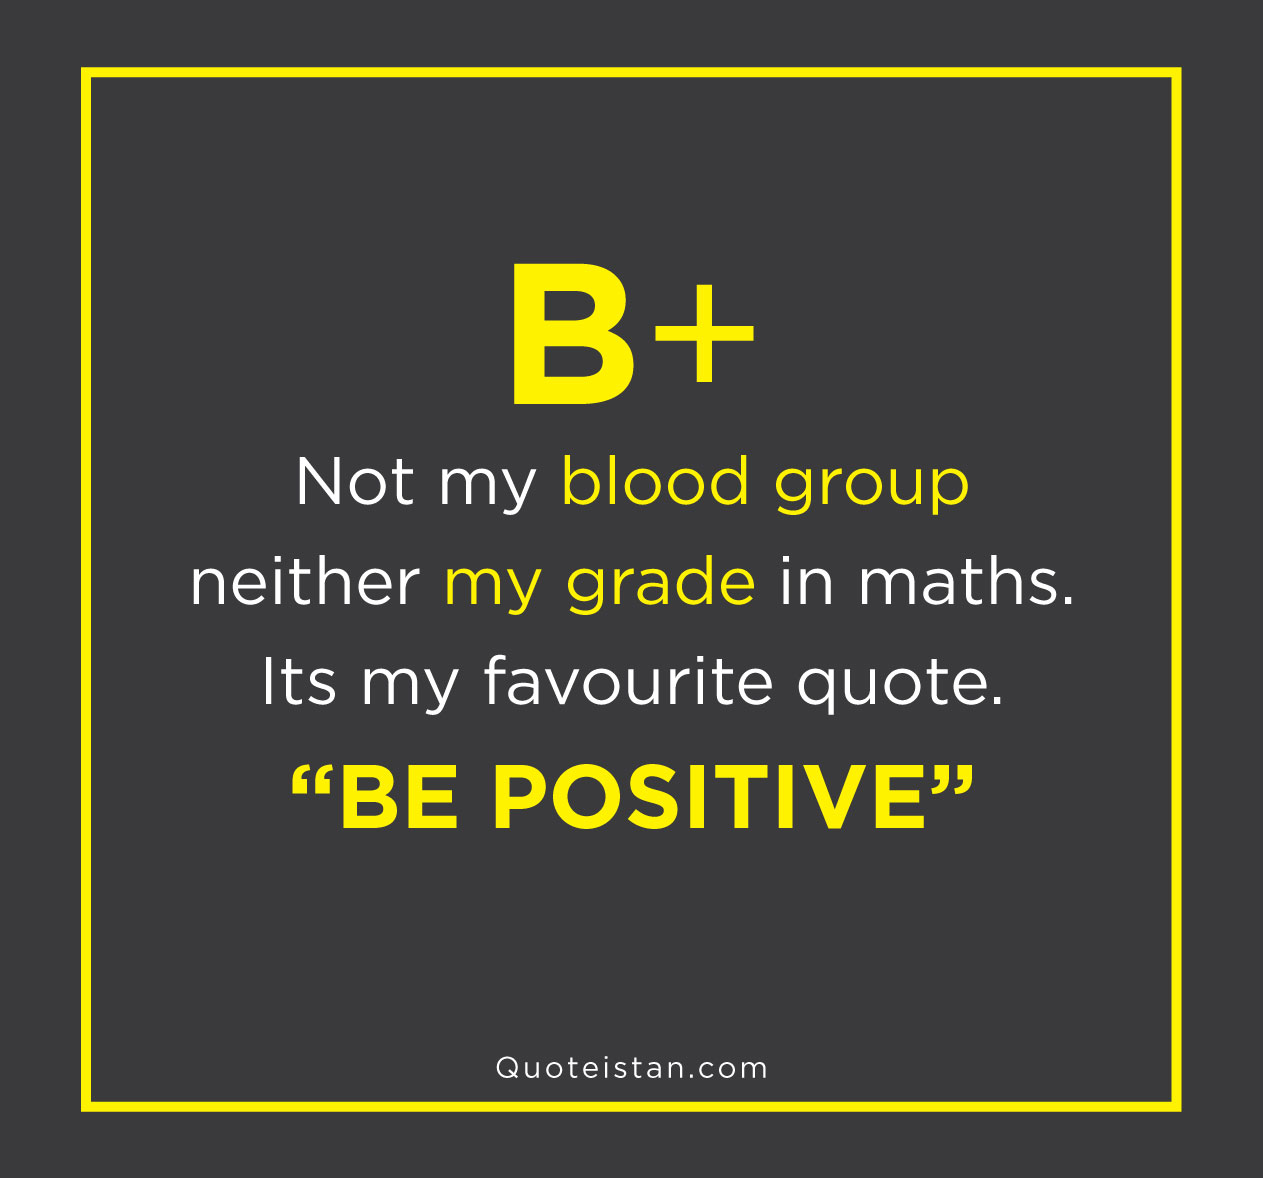 "B+ … Not my blood group neither my grade in maths … Its my favourite quote. ""BE POSITIVE"""